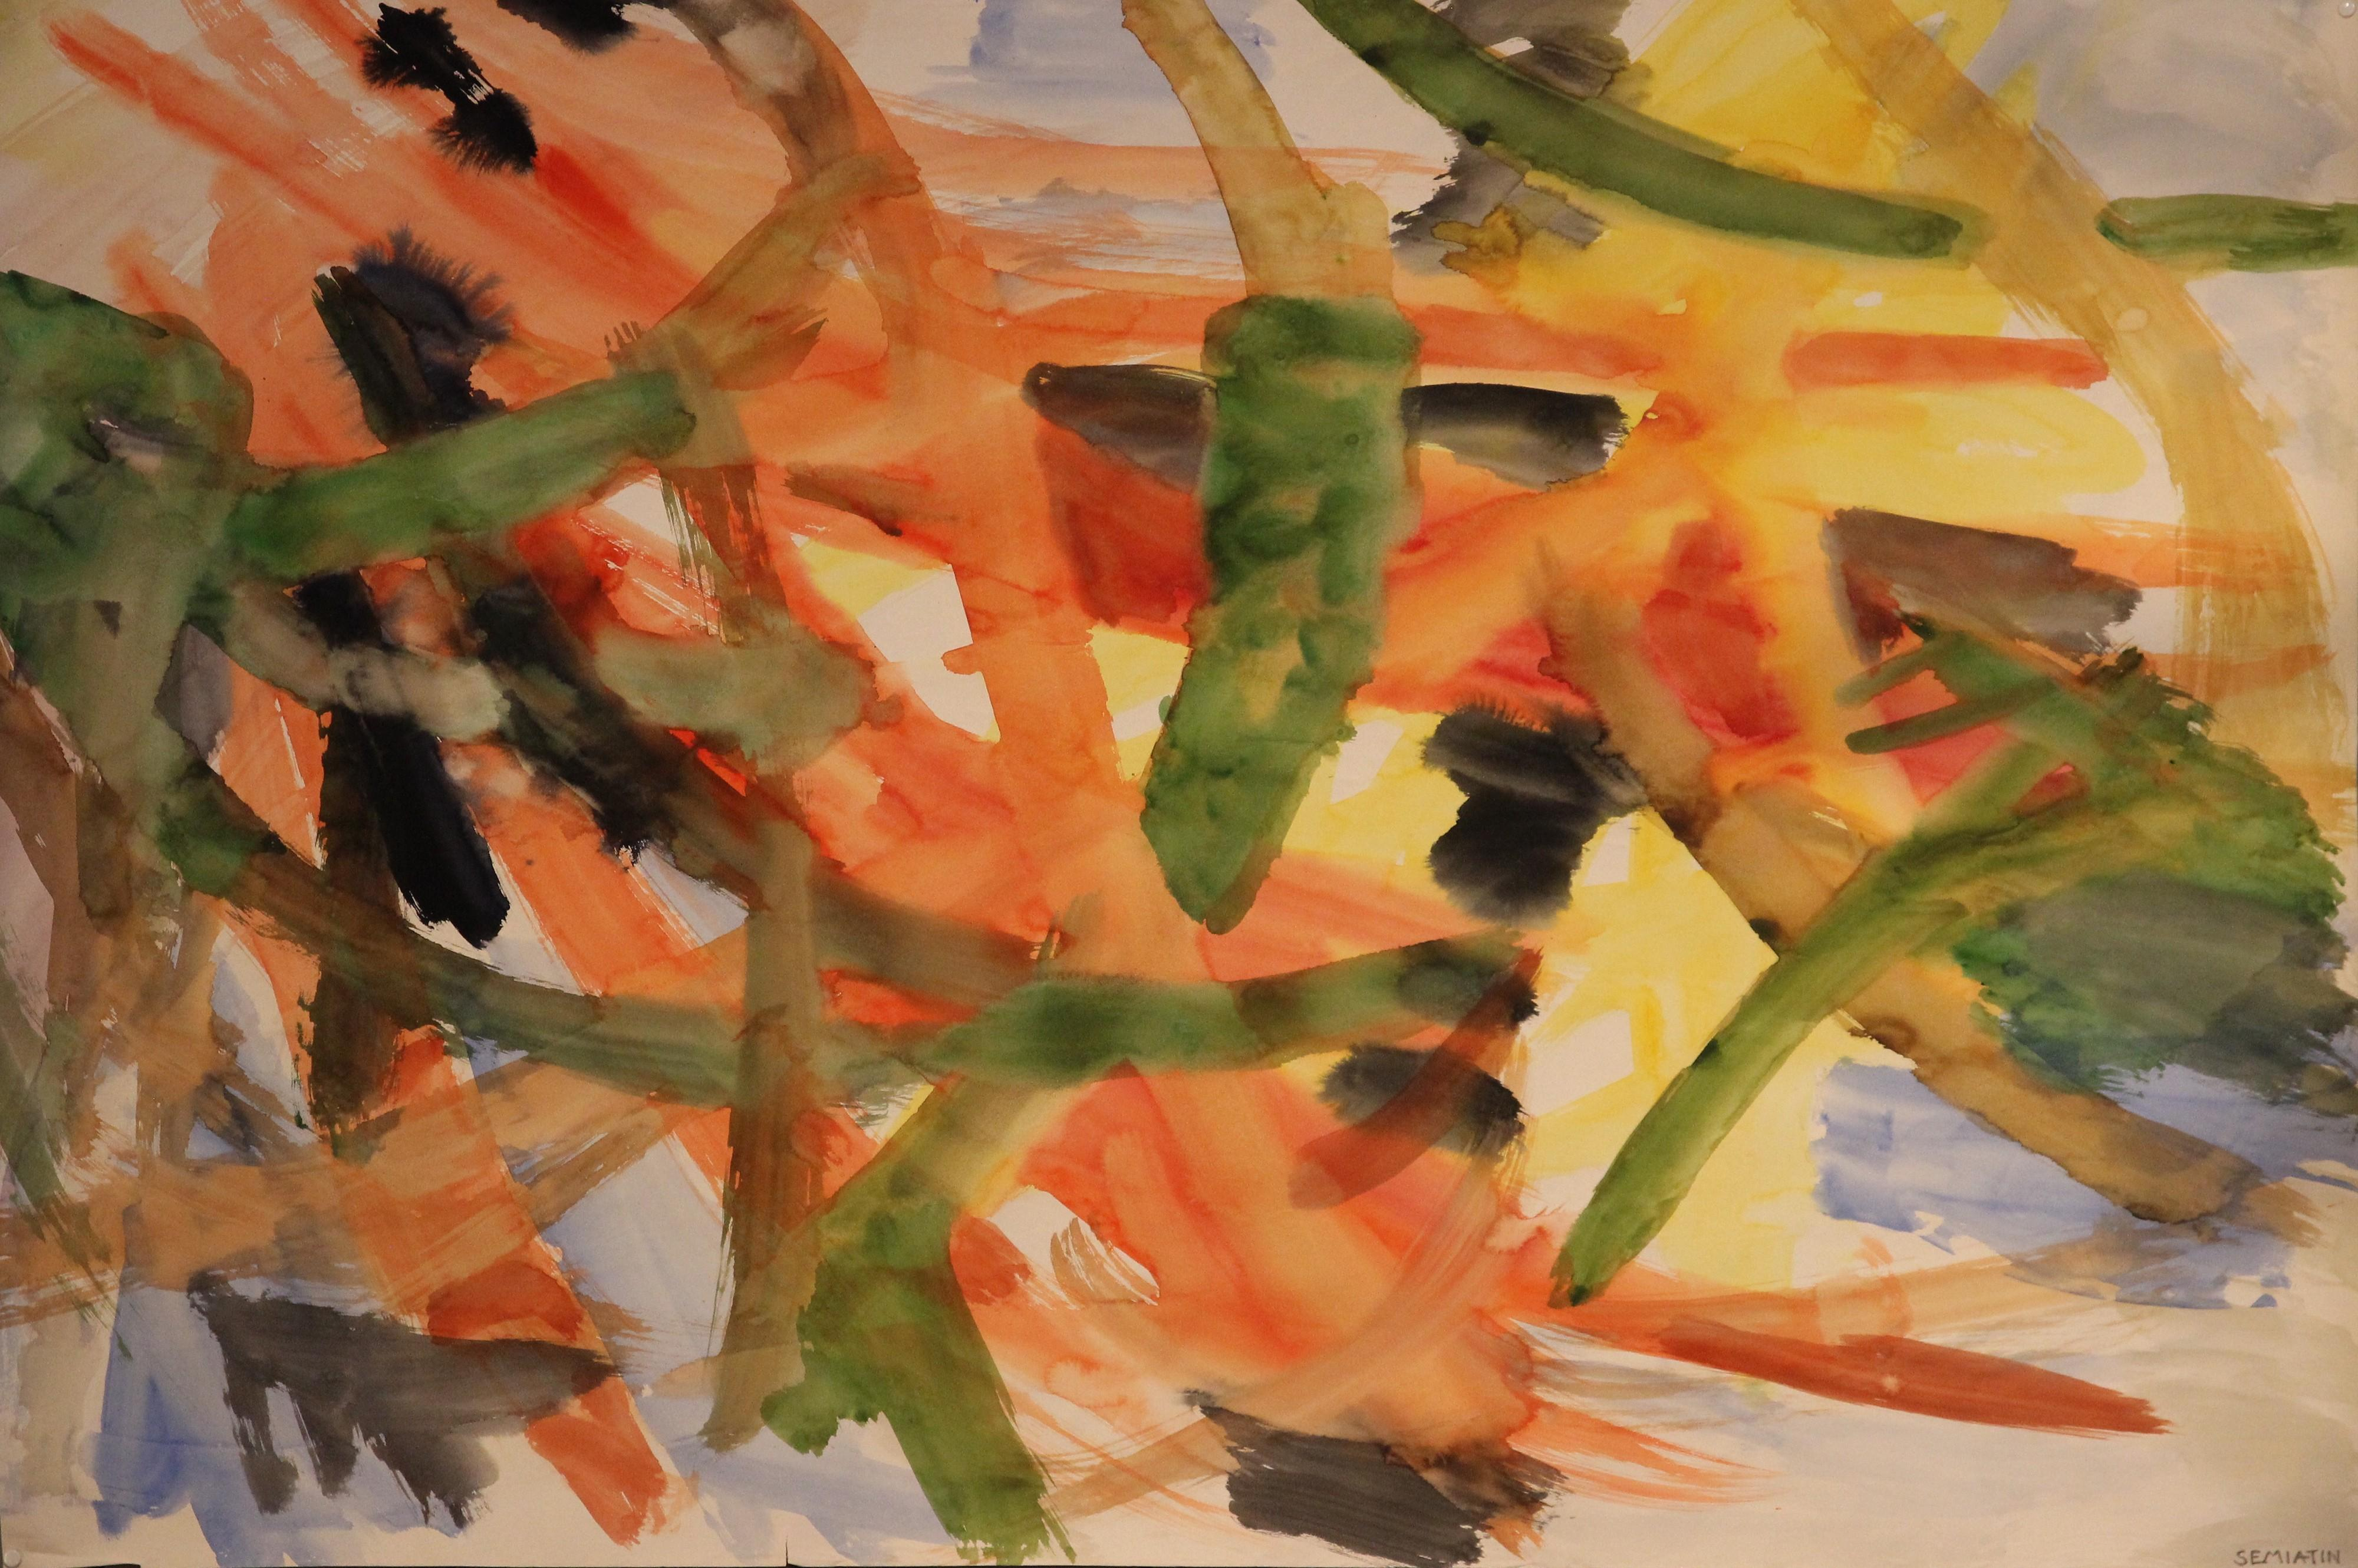 Jacob Semiatin, Painting, Watercolor on paper Signed, Circa 1950, USA